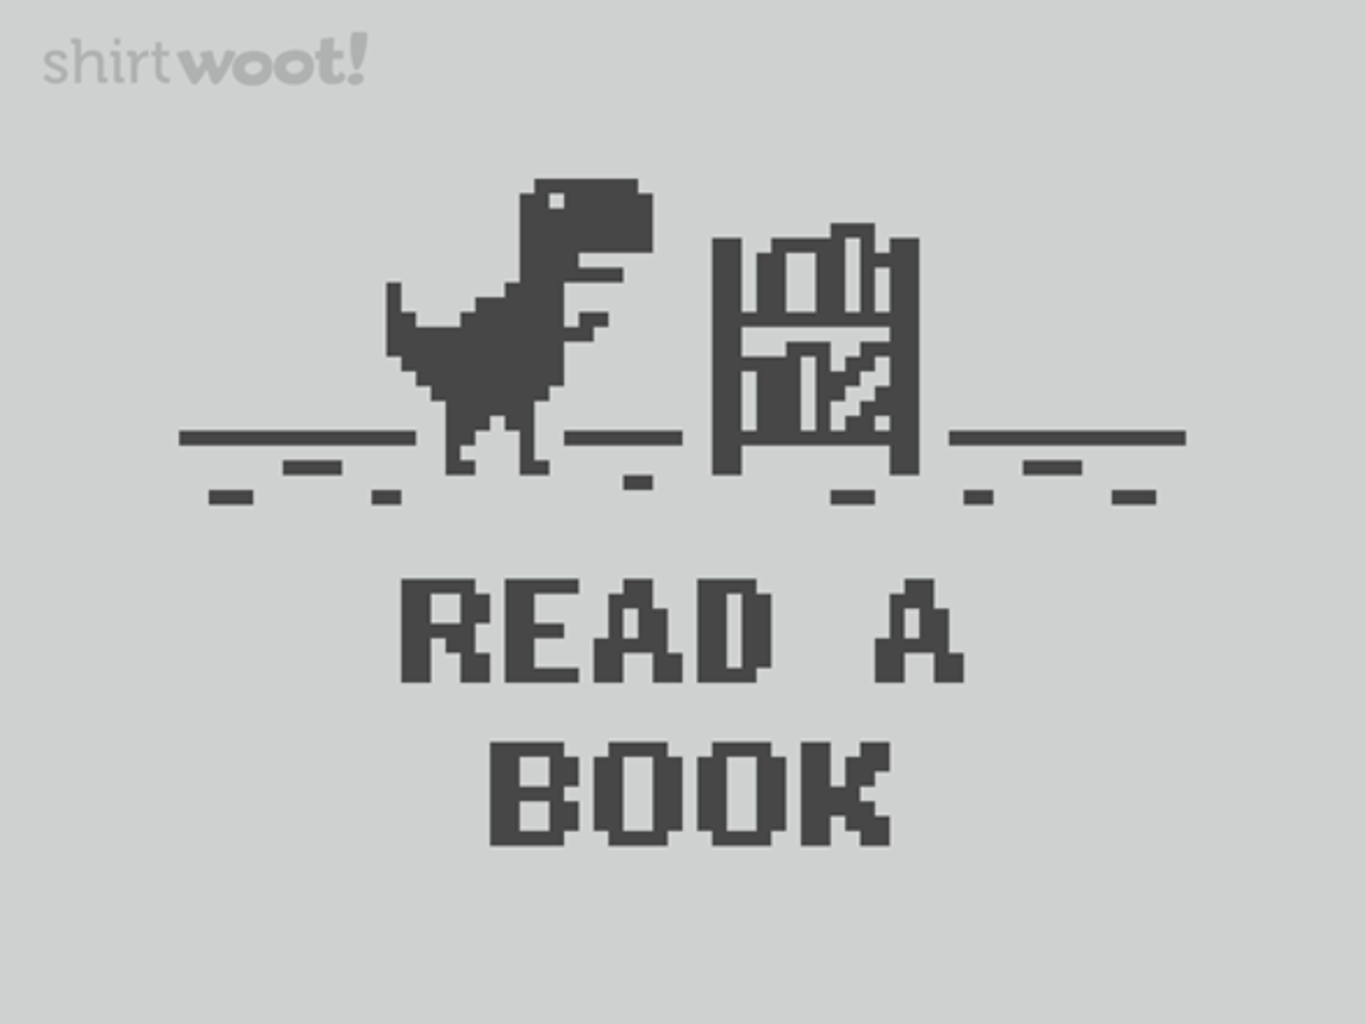 Woot!: Reading Dino - $15.00 + Free shipping